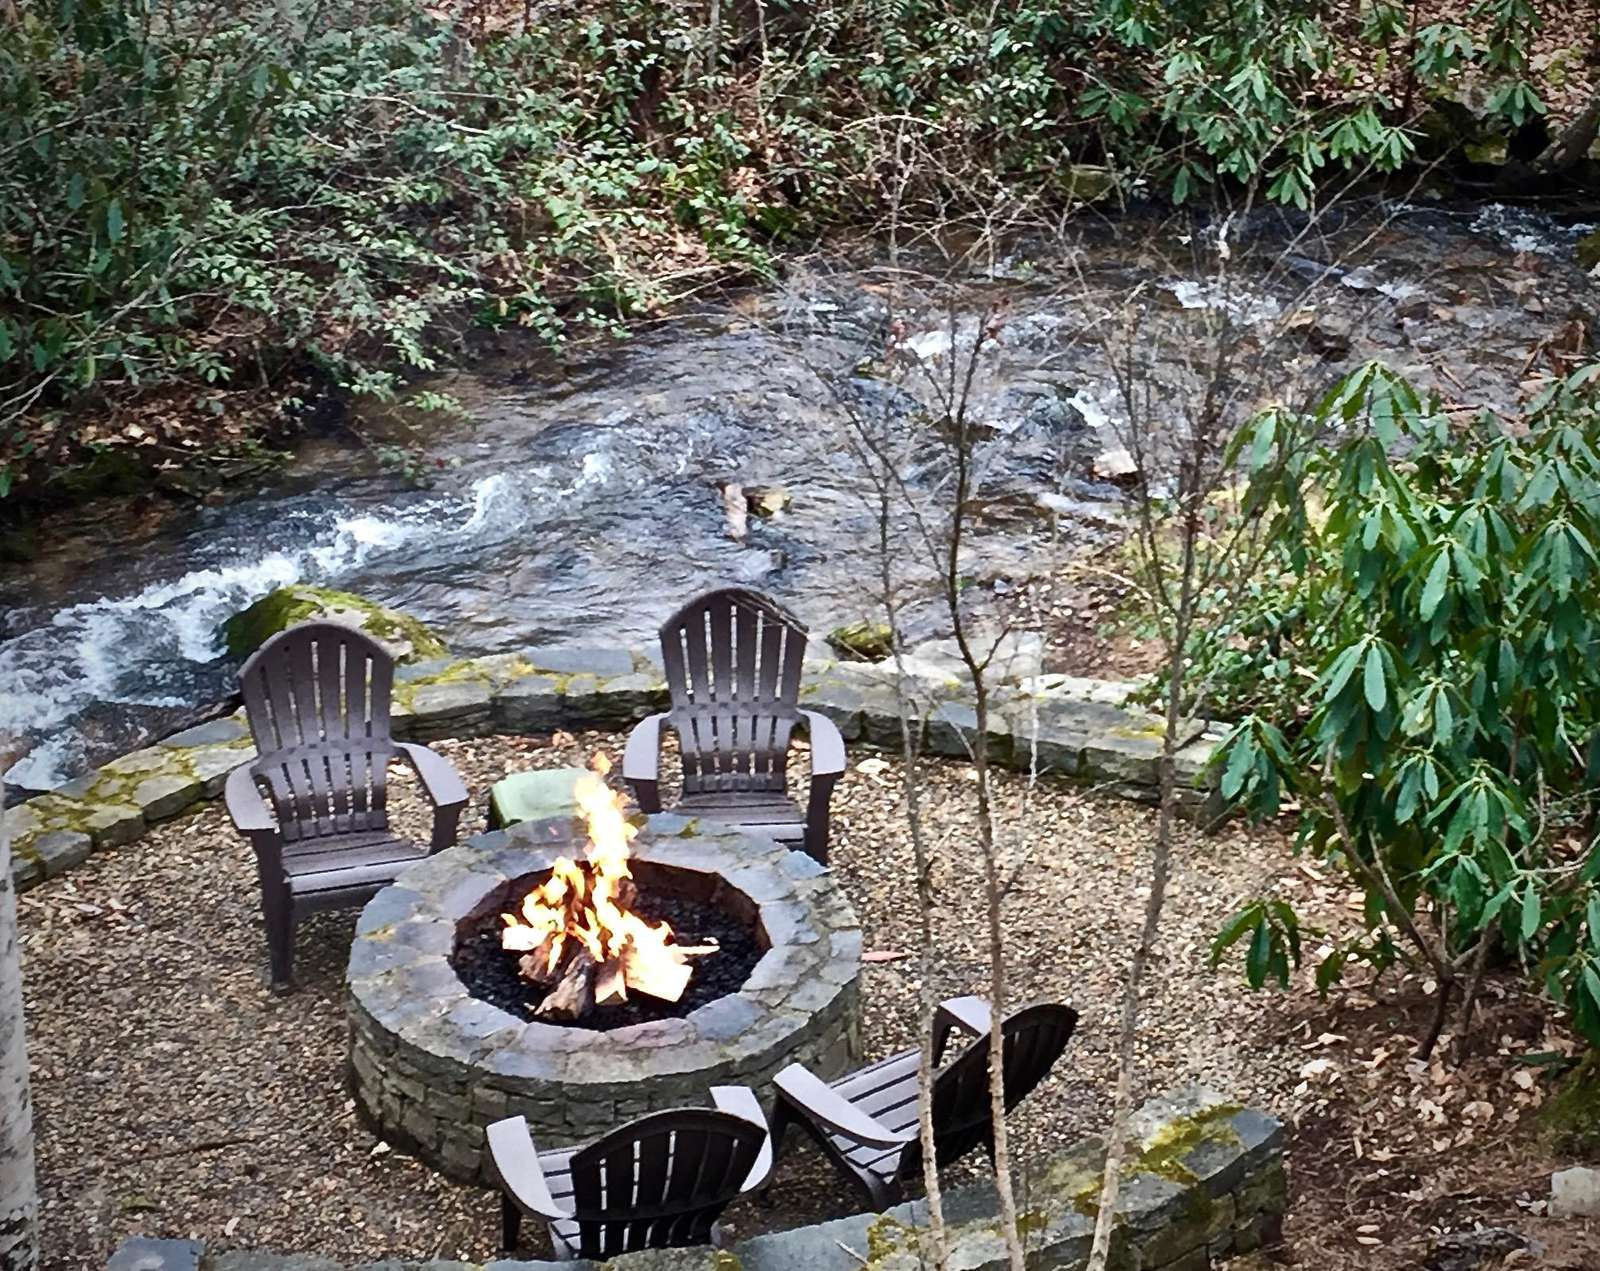 Bring the Fixins for S'Mores and Brush Up on the Camp Fire Stories